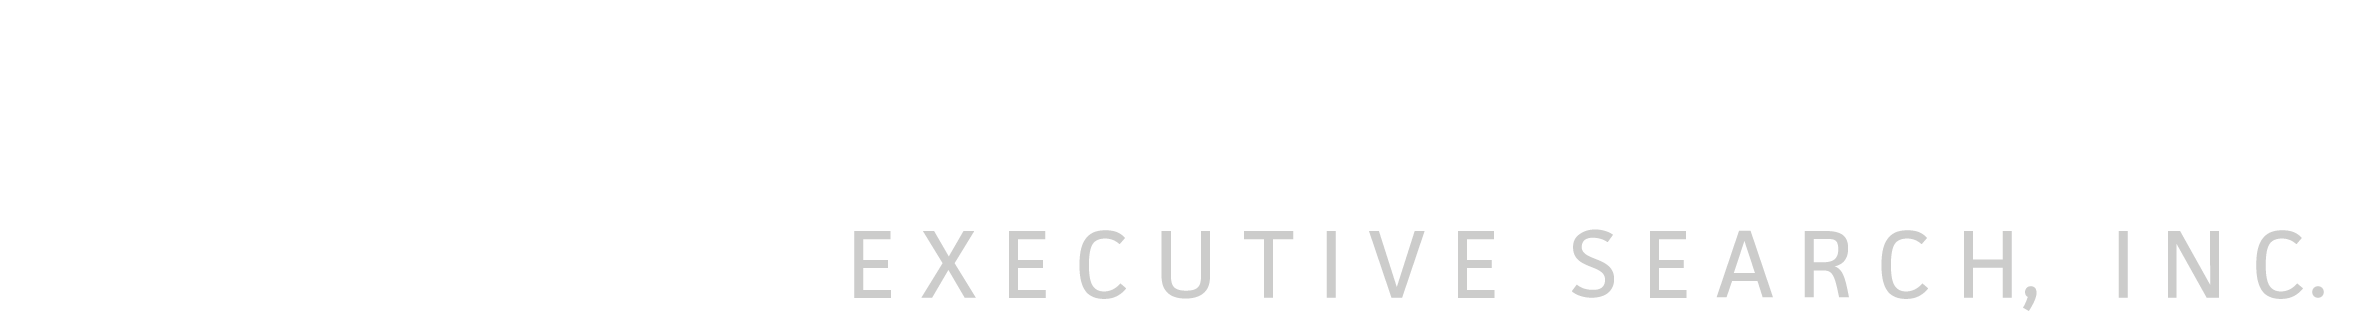 Harper and Hill Executive Search, Inc.